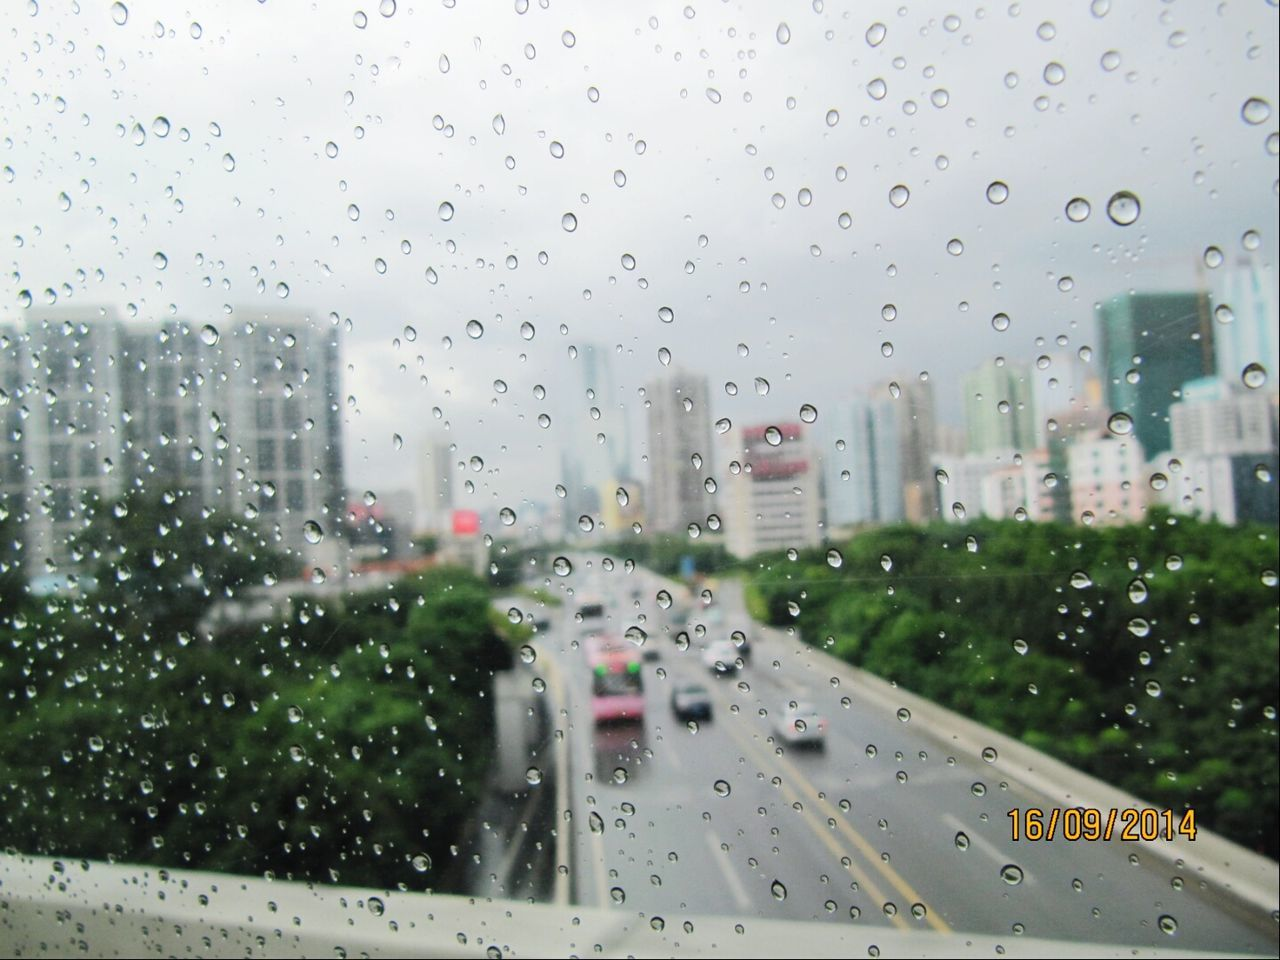 drop, glass - material, architecture, built structure, raindrop, window, building exterior, water, no people, wet, city, transportation, day, skyscraper, land vehicle, outdoors, road, sky, cityscape, nature, close-up